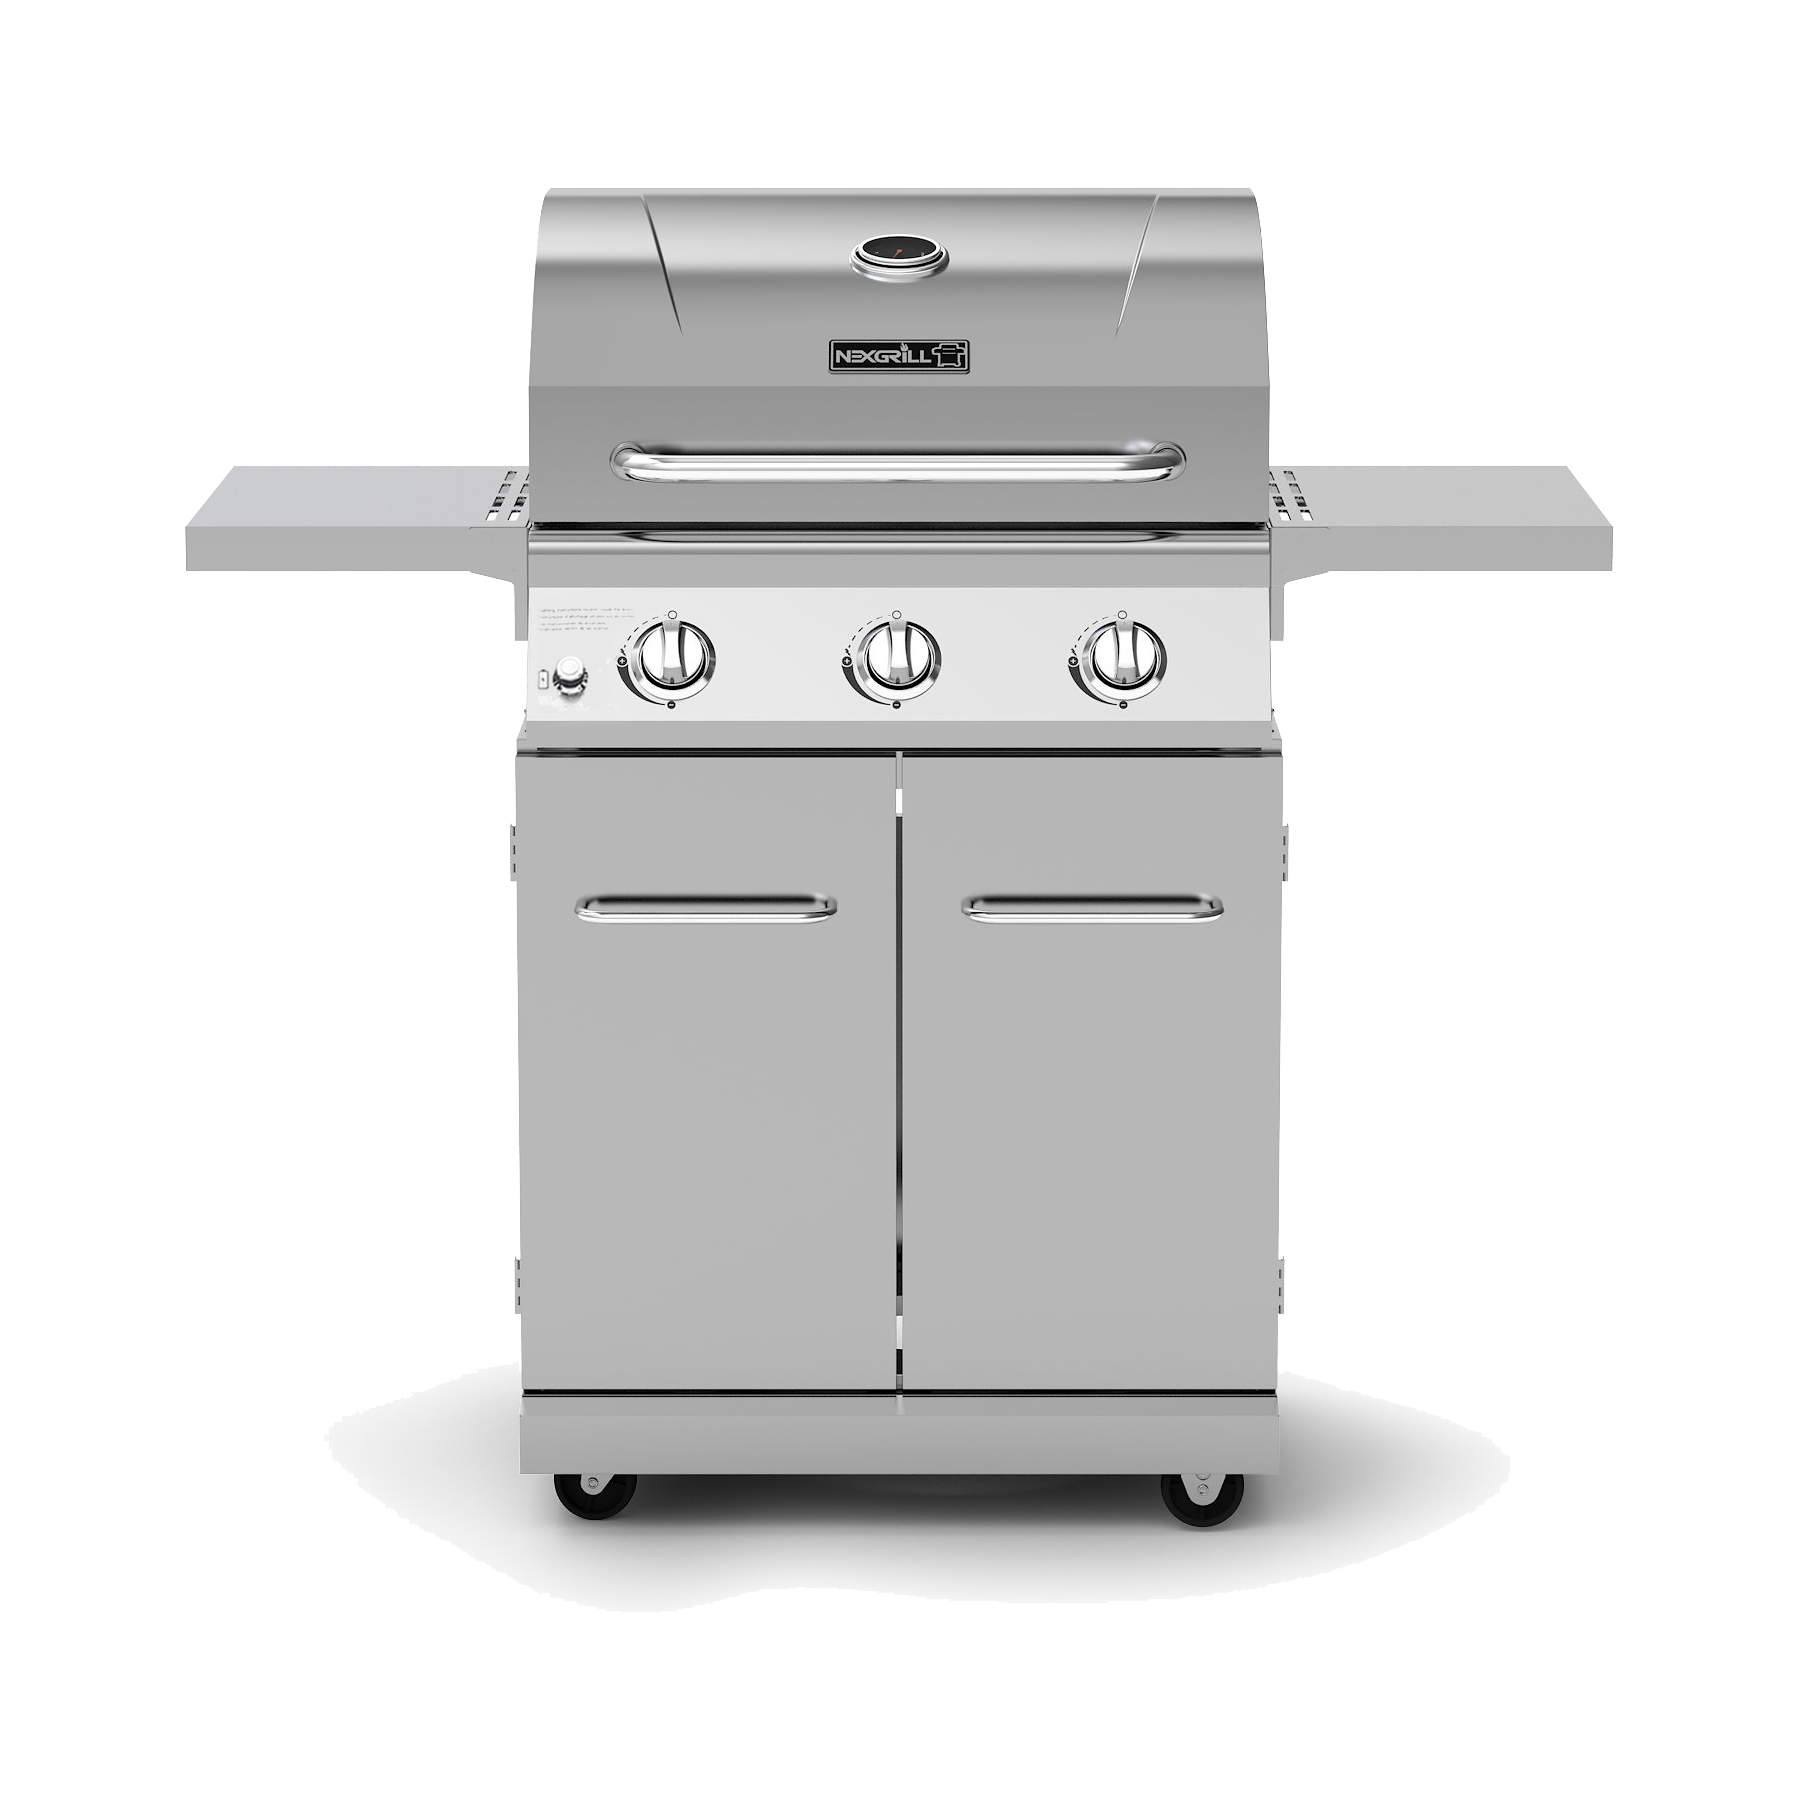 3-Burner Propane Gas Grill in Stainless Steel